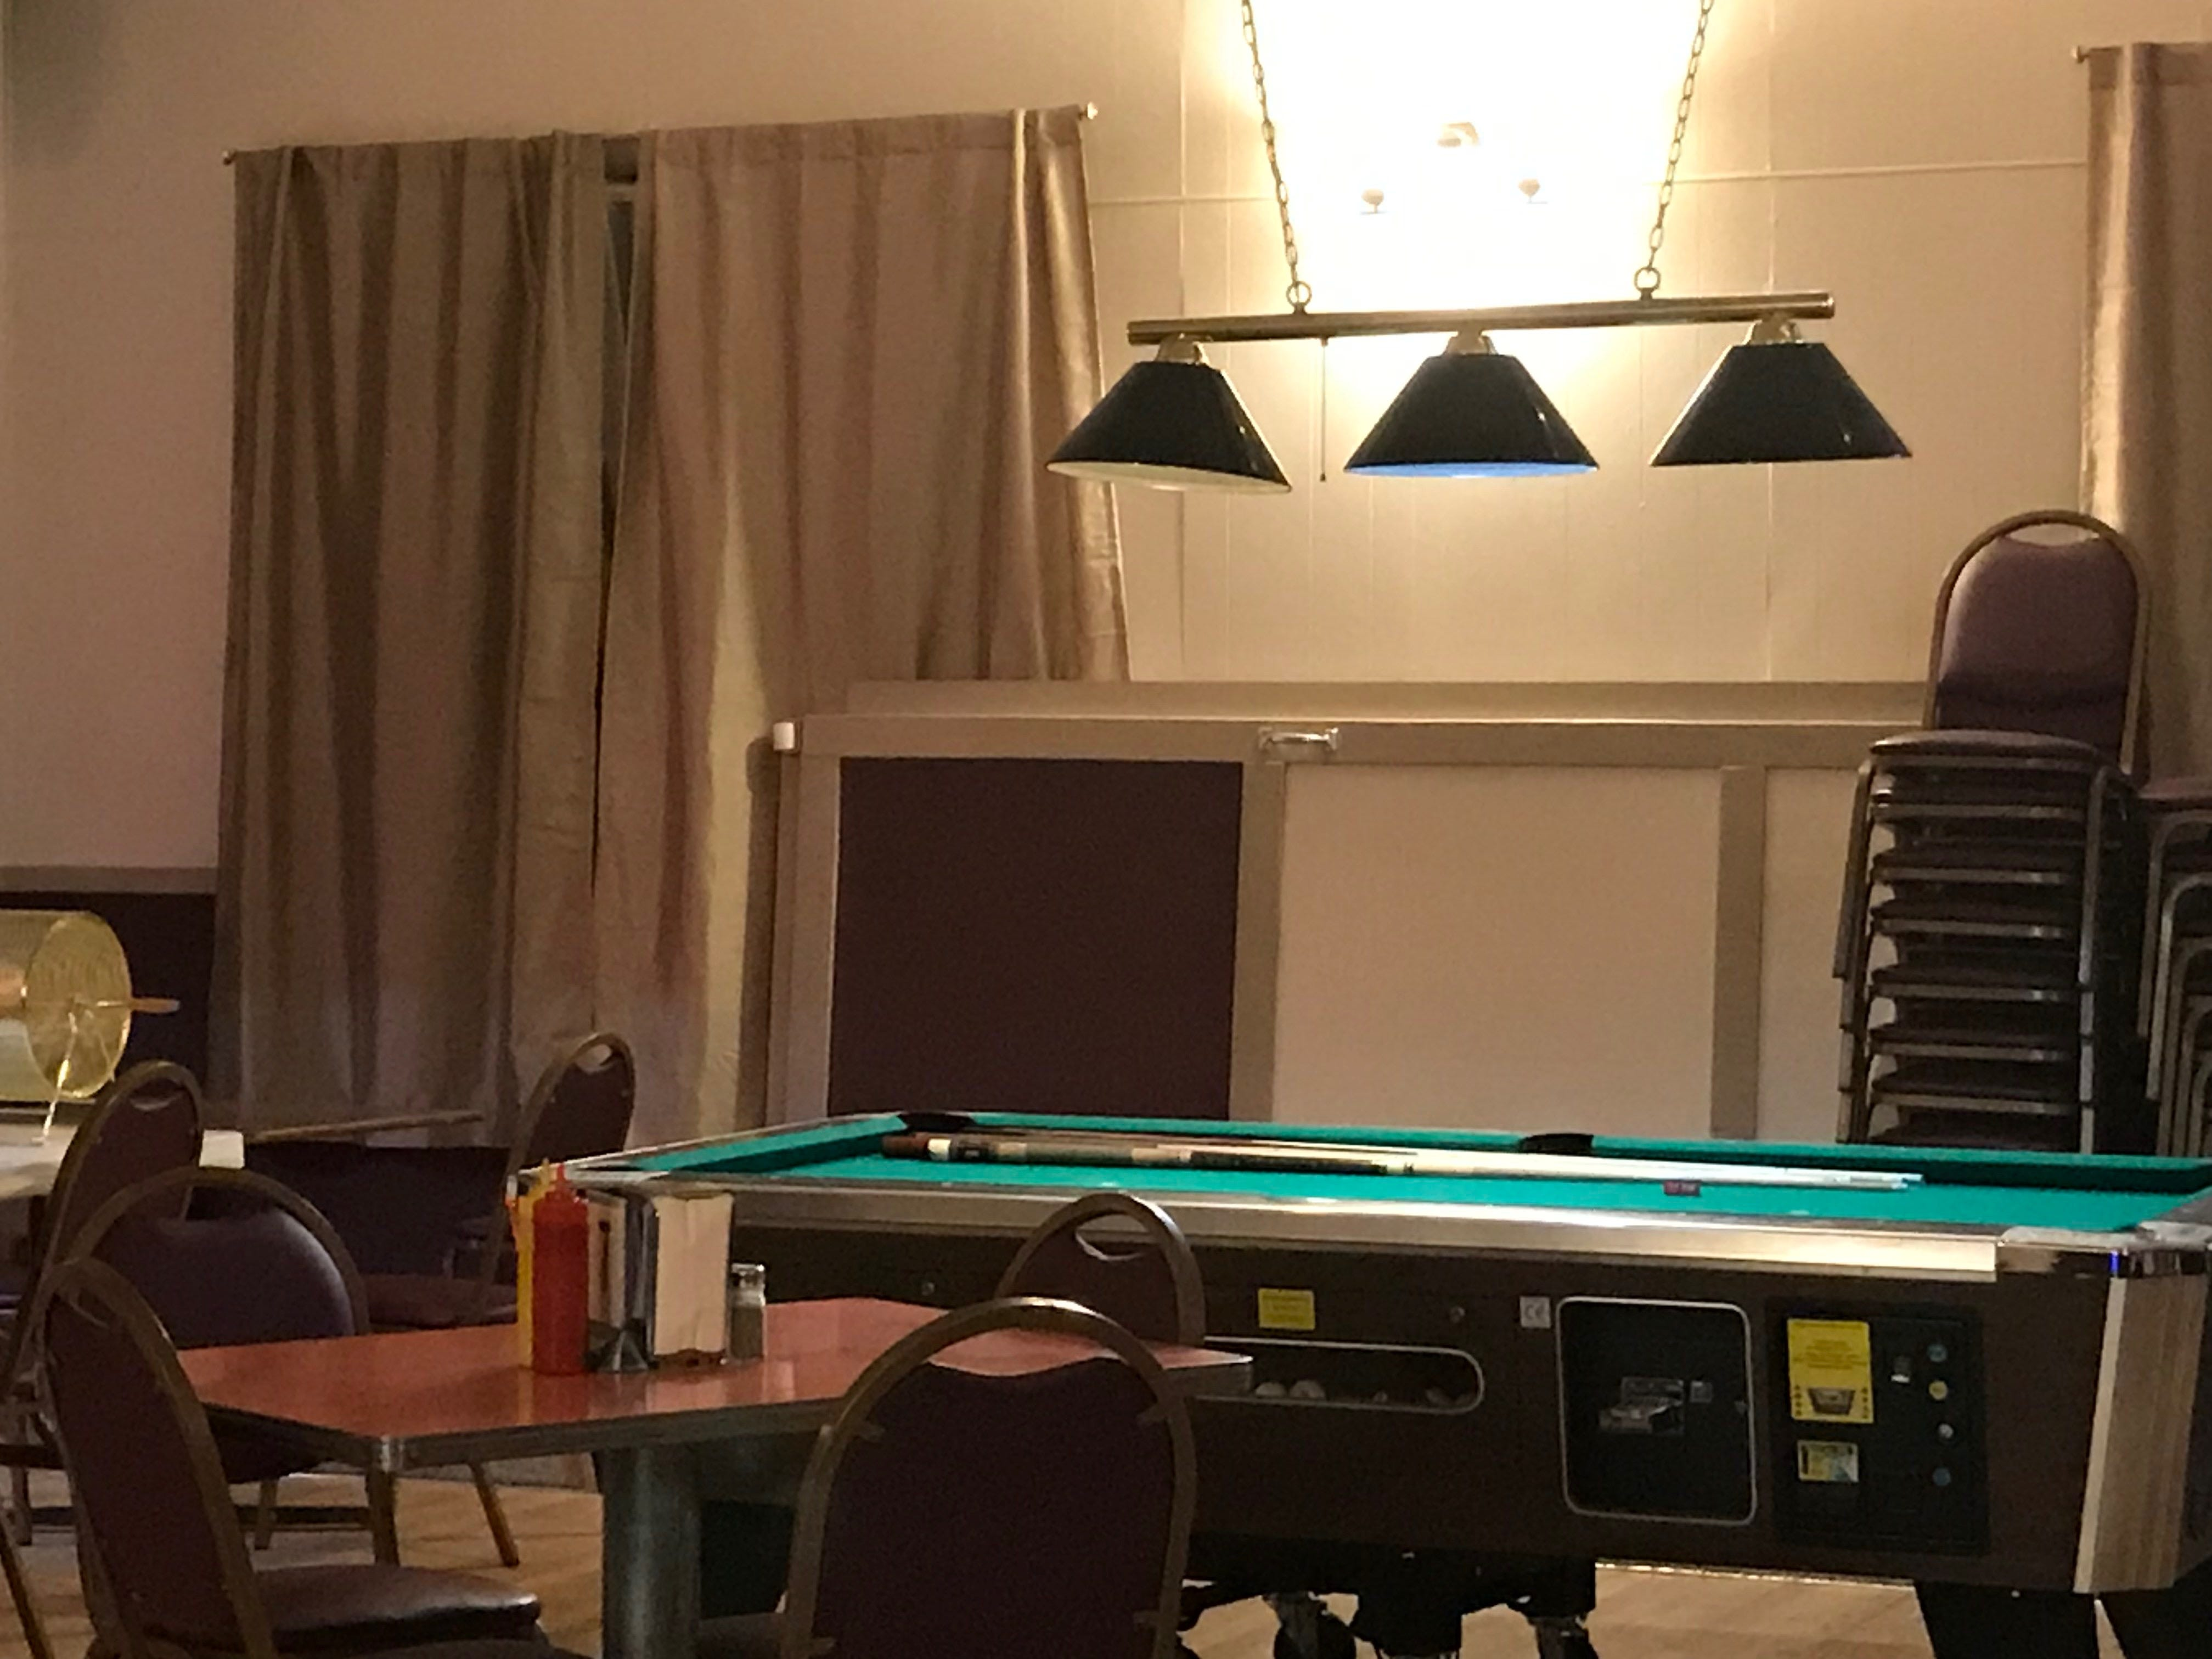 Meat's pool table